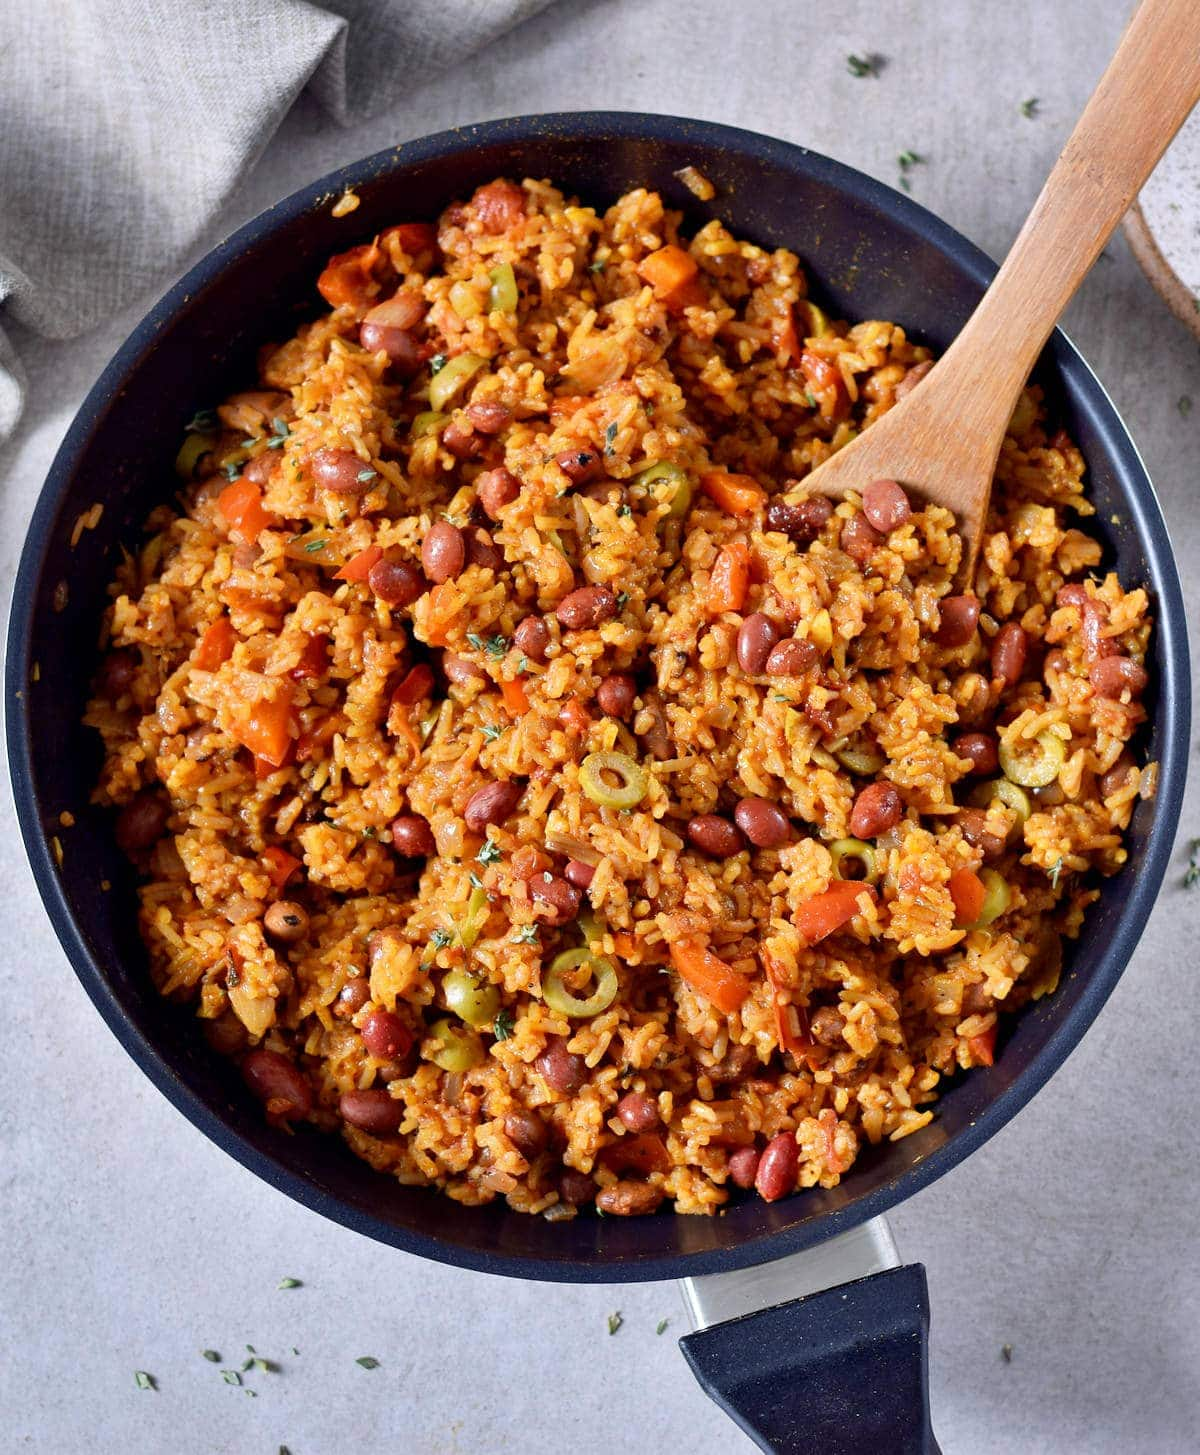 spanish rice and beans in a pan